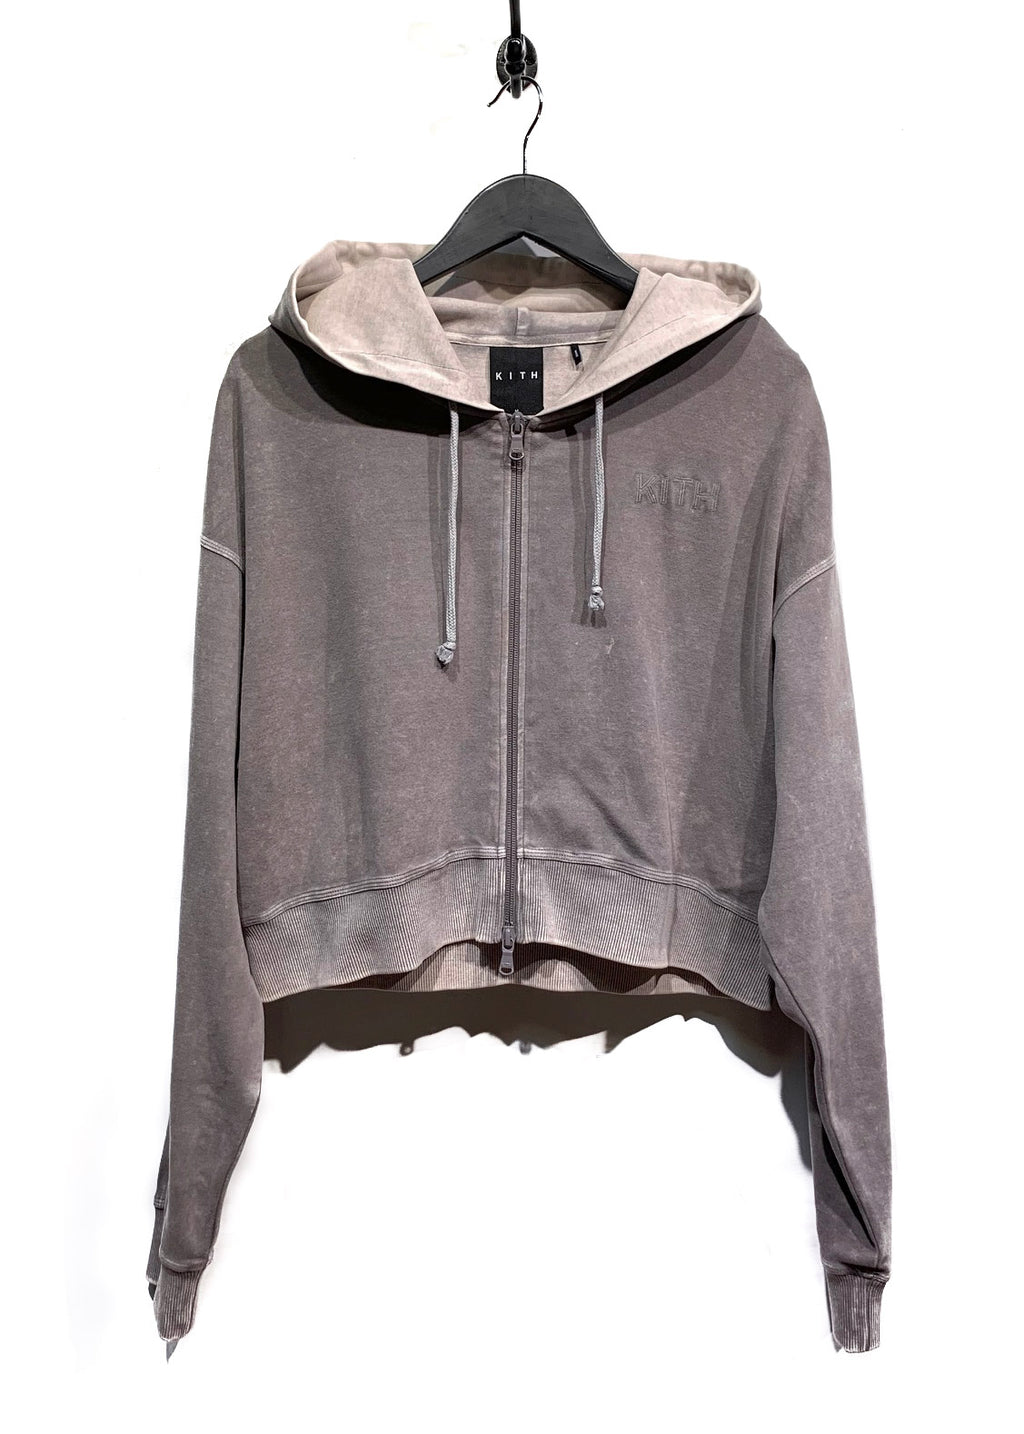 Kith Tarmac Falllon Cropped Zip-Up Hoodie